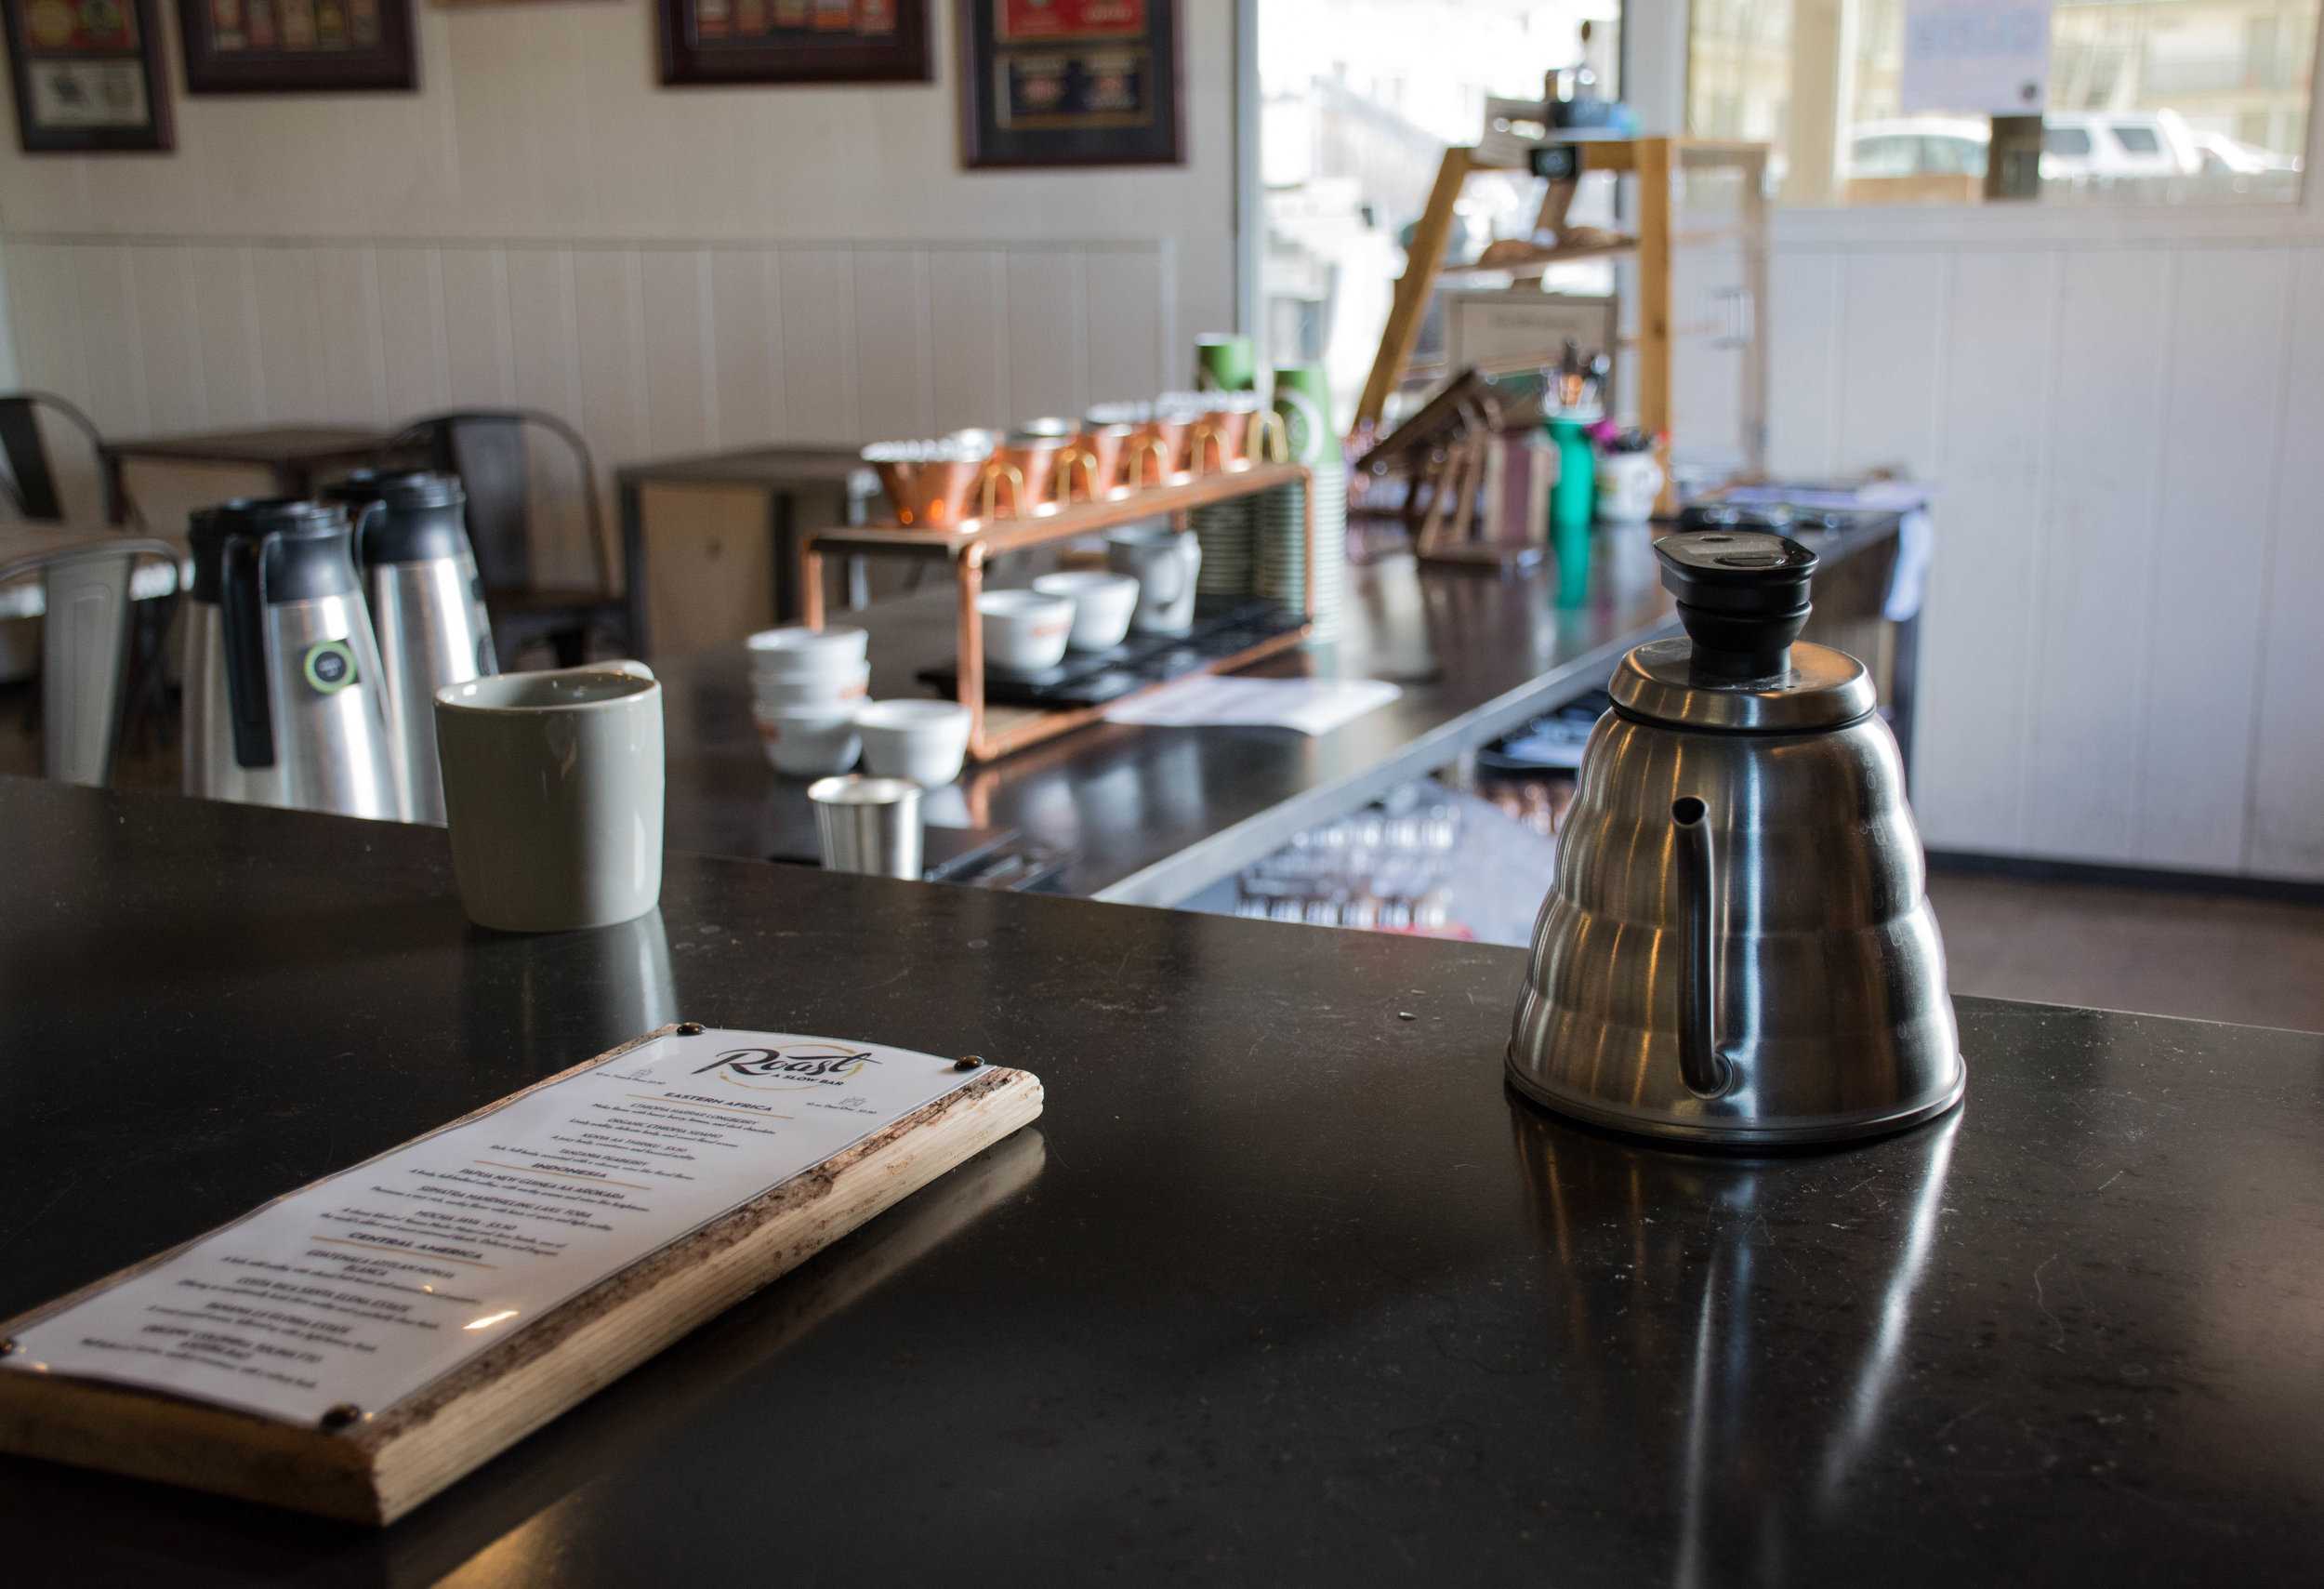 Dawson Taylor's pour over bar Roast opened last winter